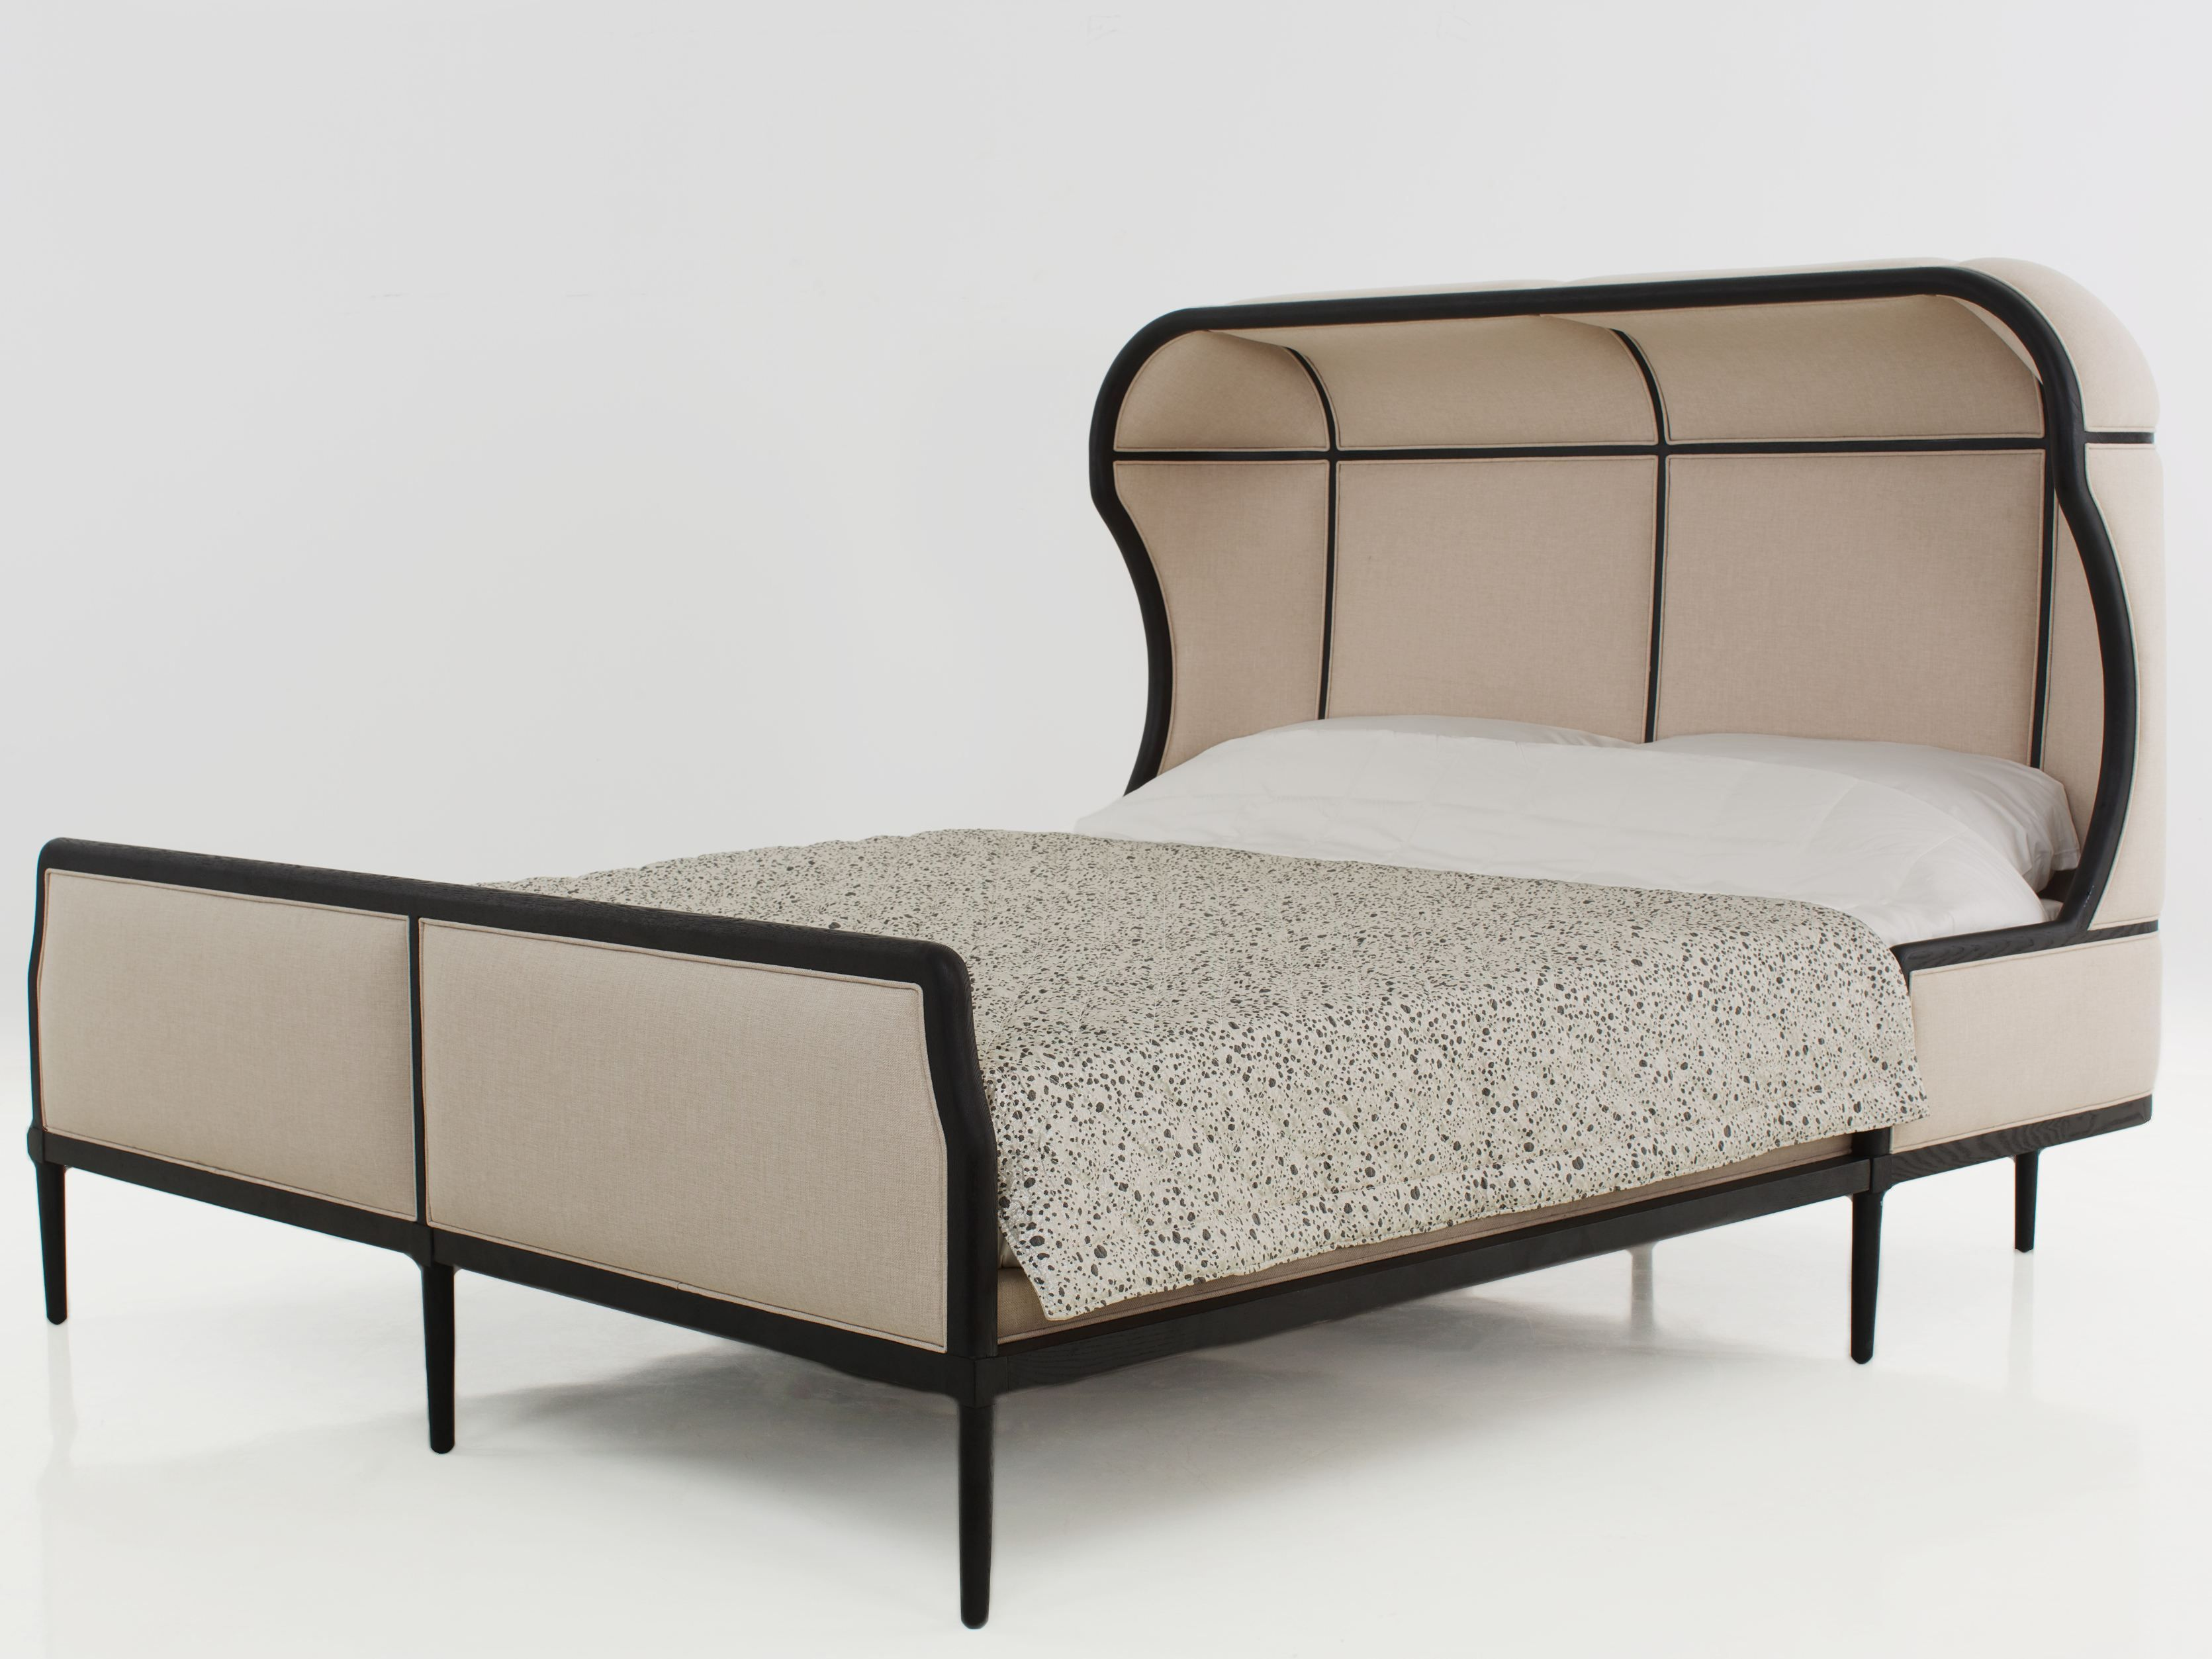 Laval Bed By Stellar Works, Igloo Double Bed Design Oeo,